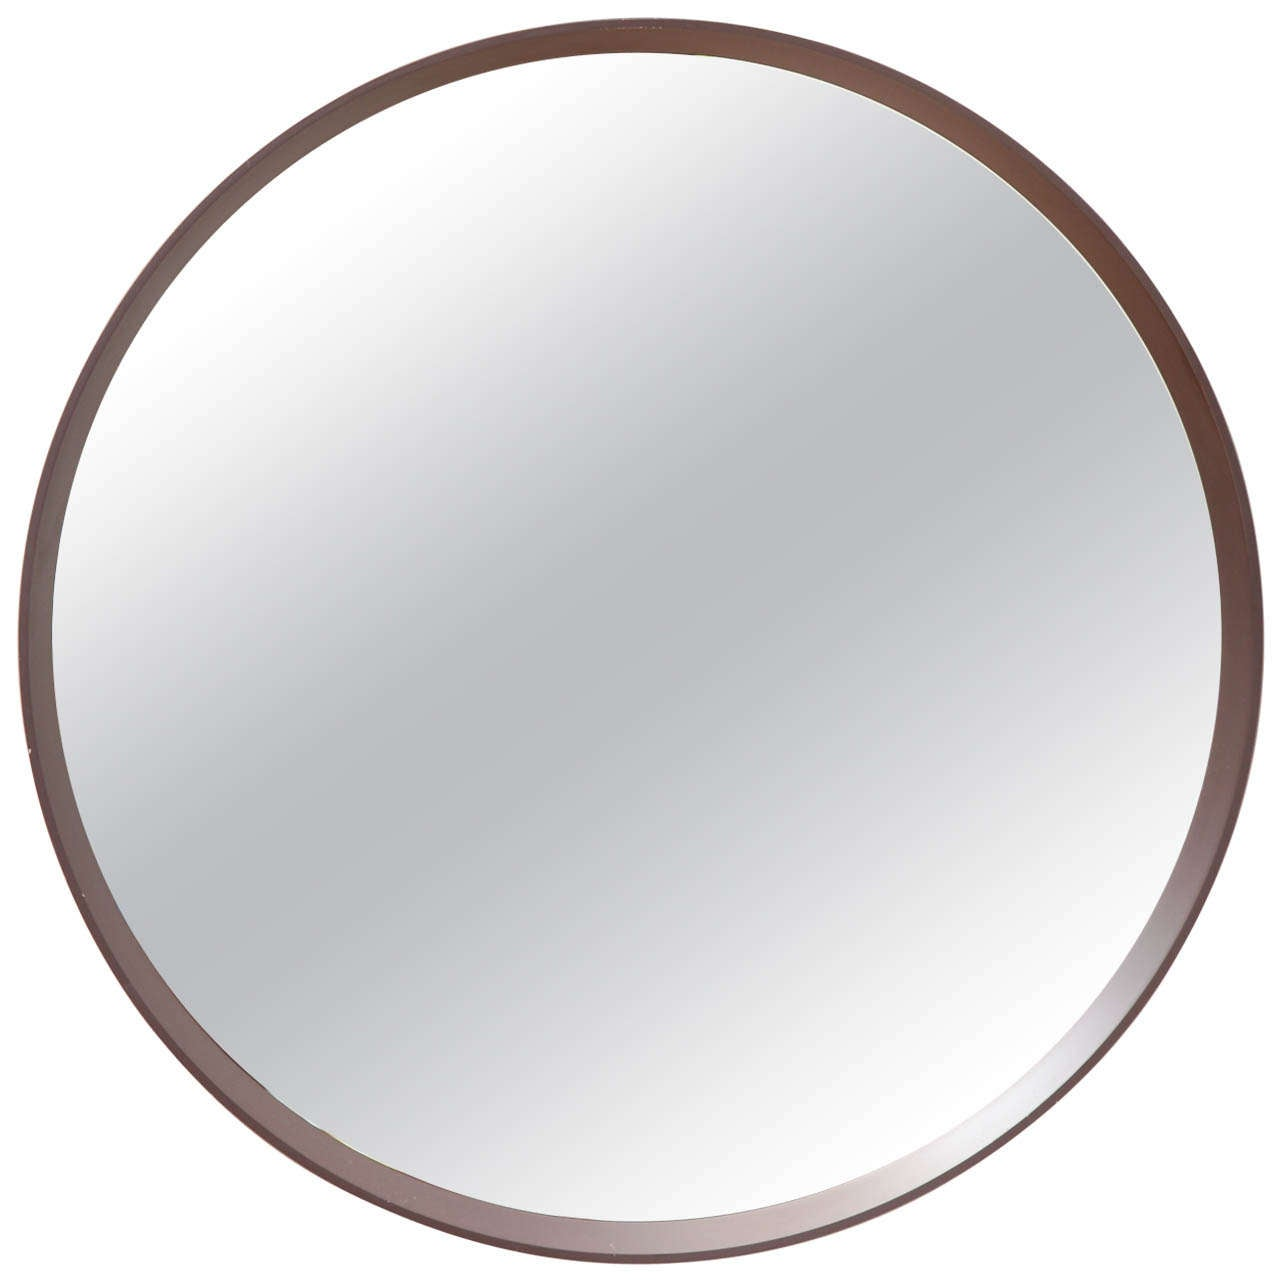 Mid century modern round mirror at 1stdibs for Round mirror